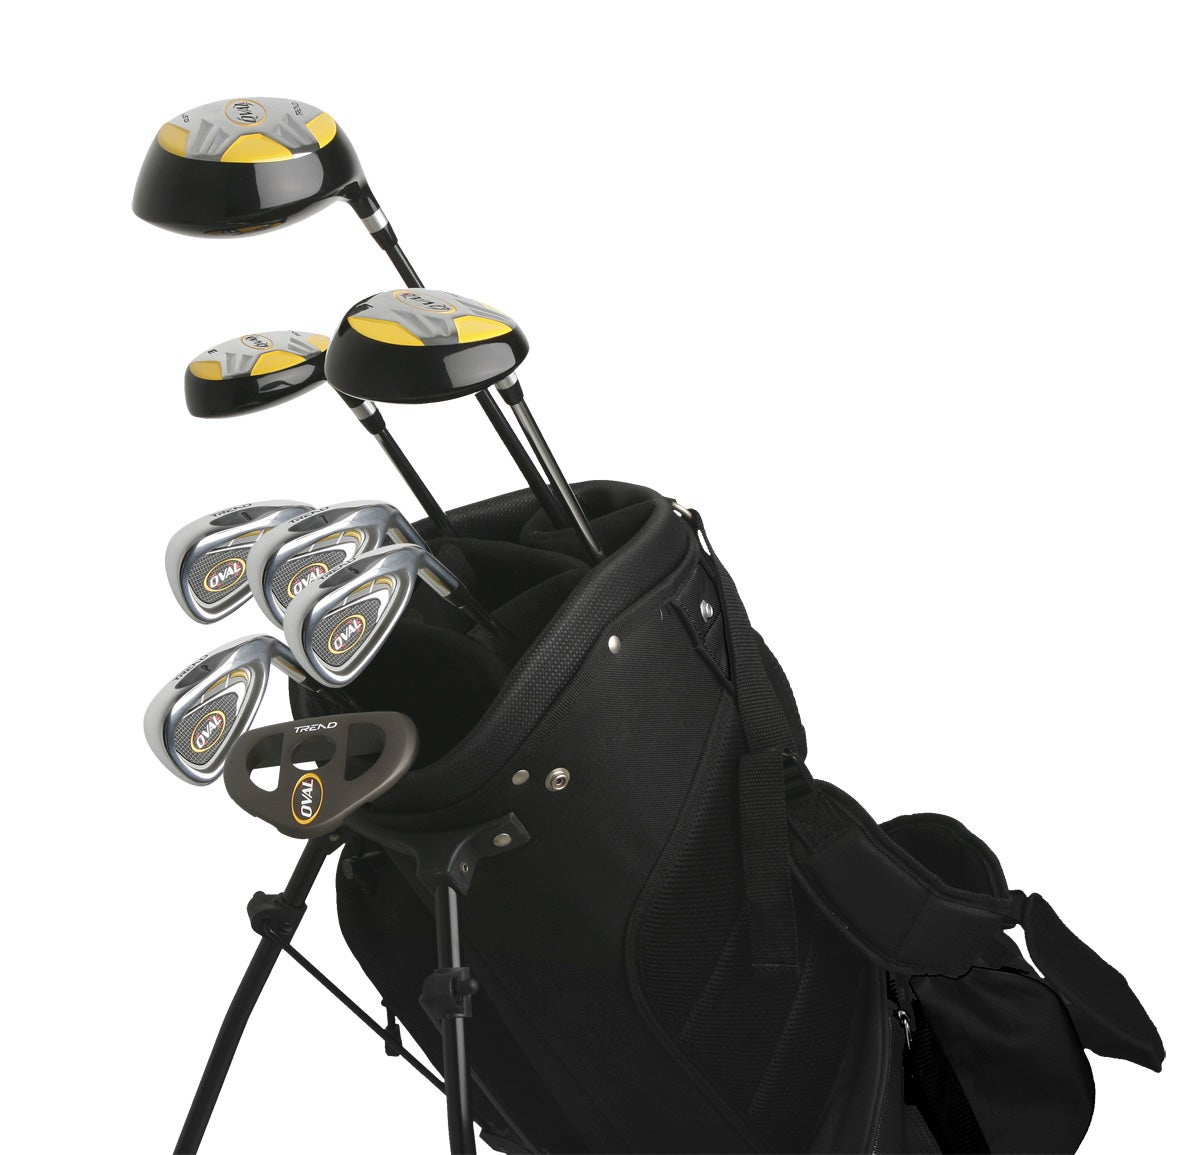 Oval Men's 10-piece Golf Club Starter Set